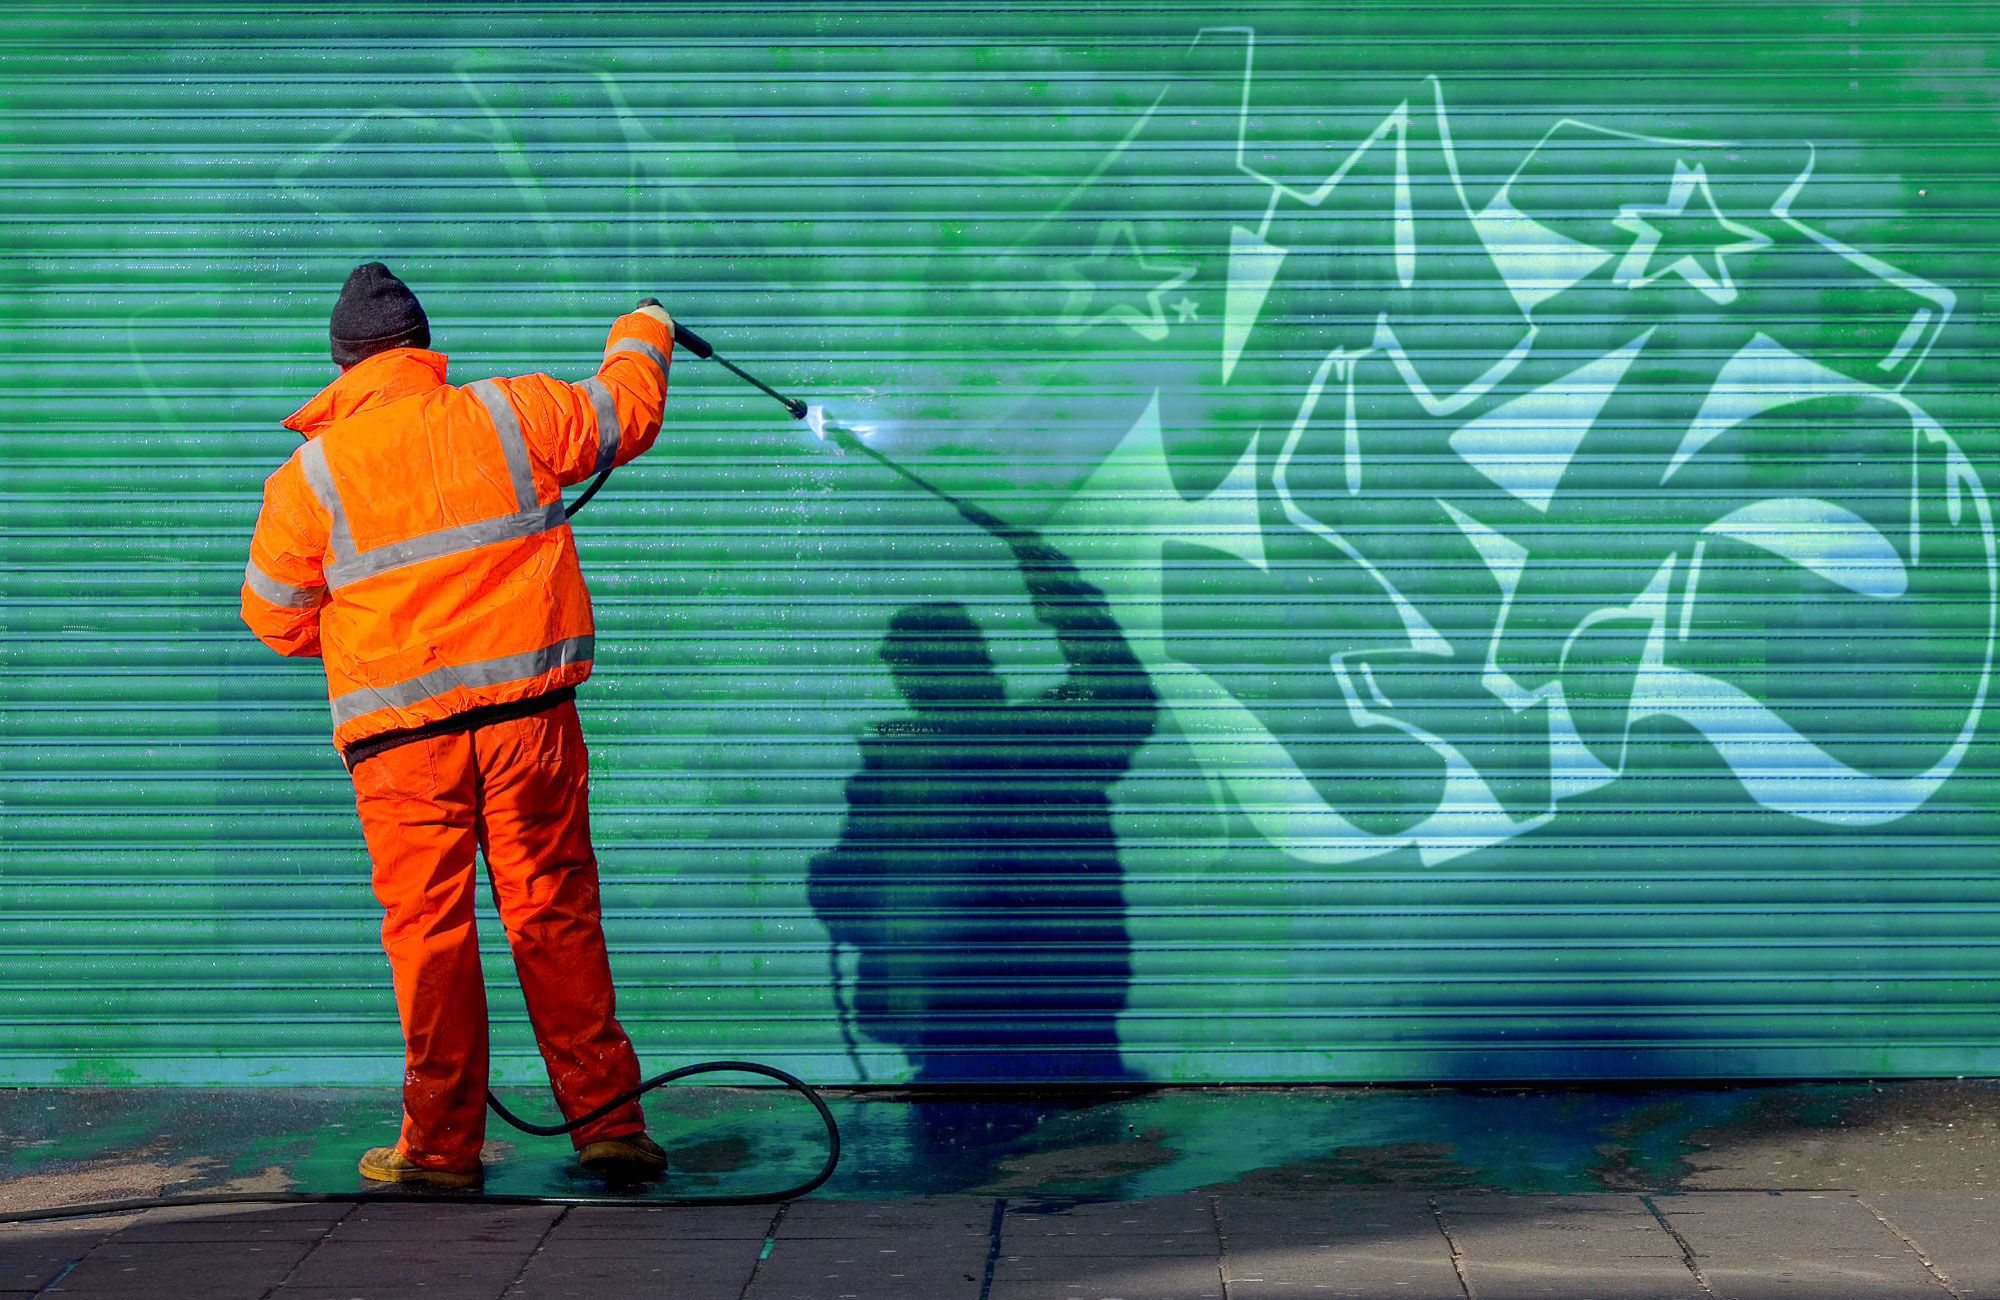 How Come Graffiti Removal Has Become so Worthwhile For Cleaning Businesses?